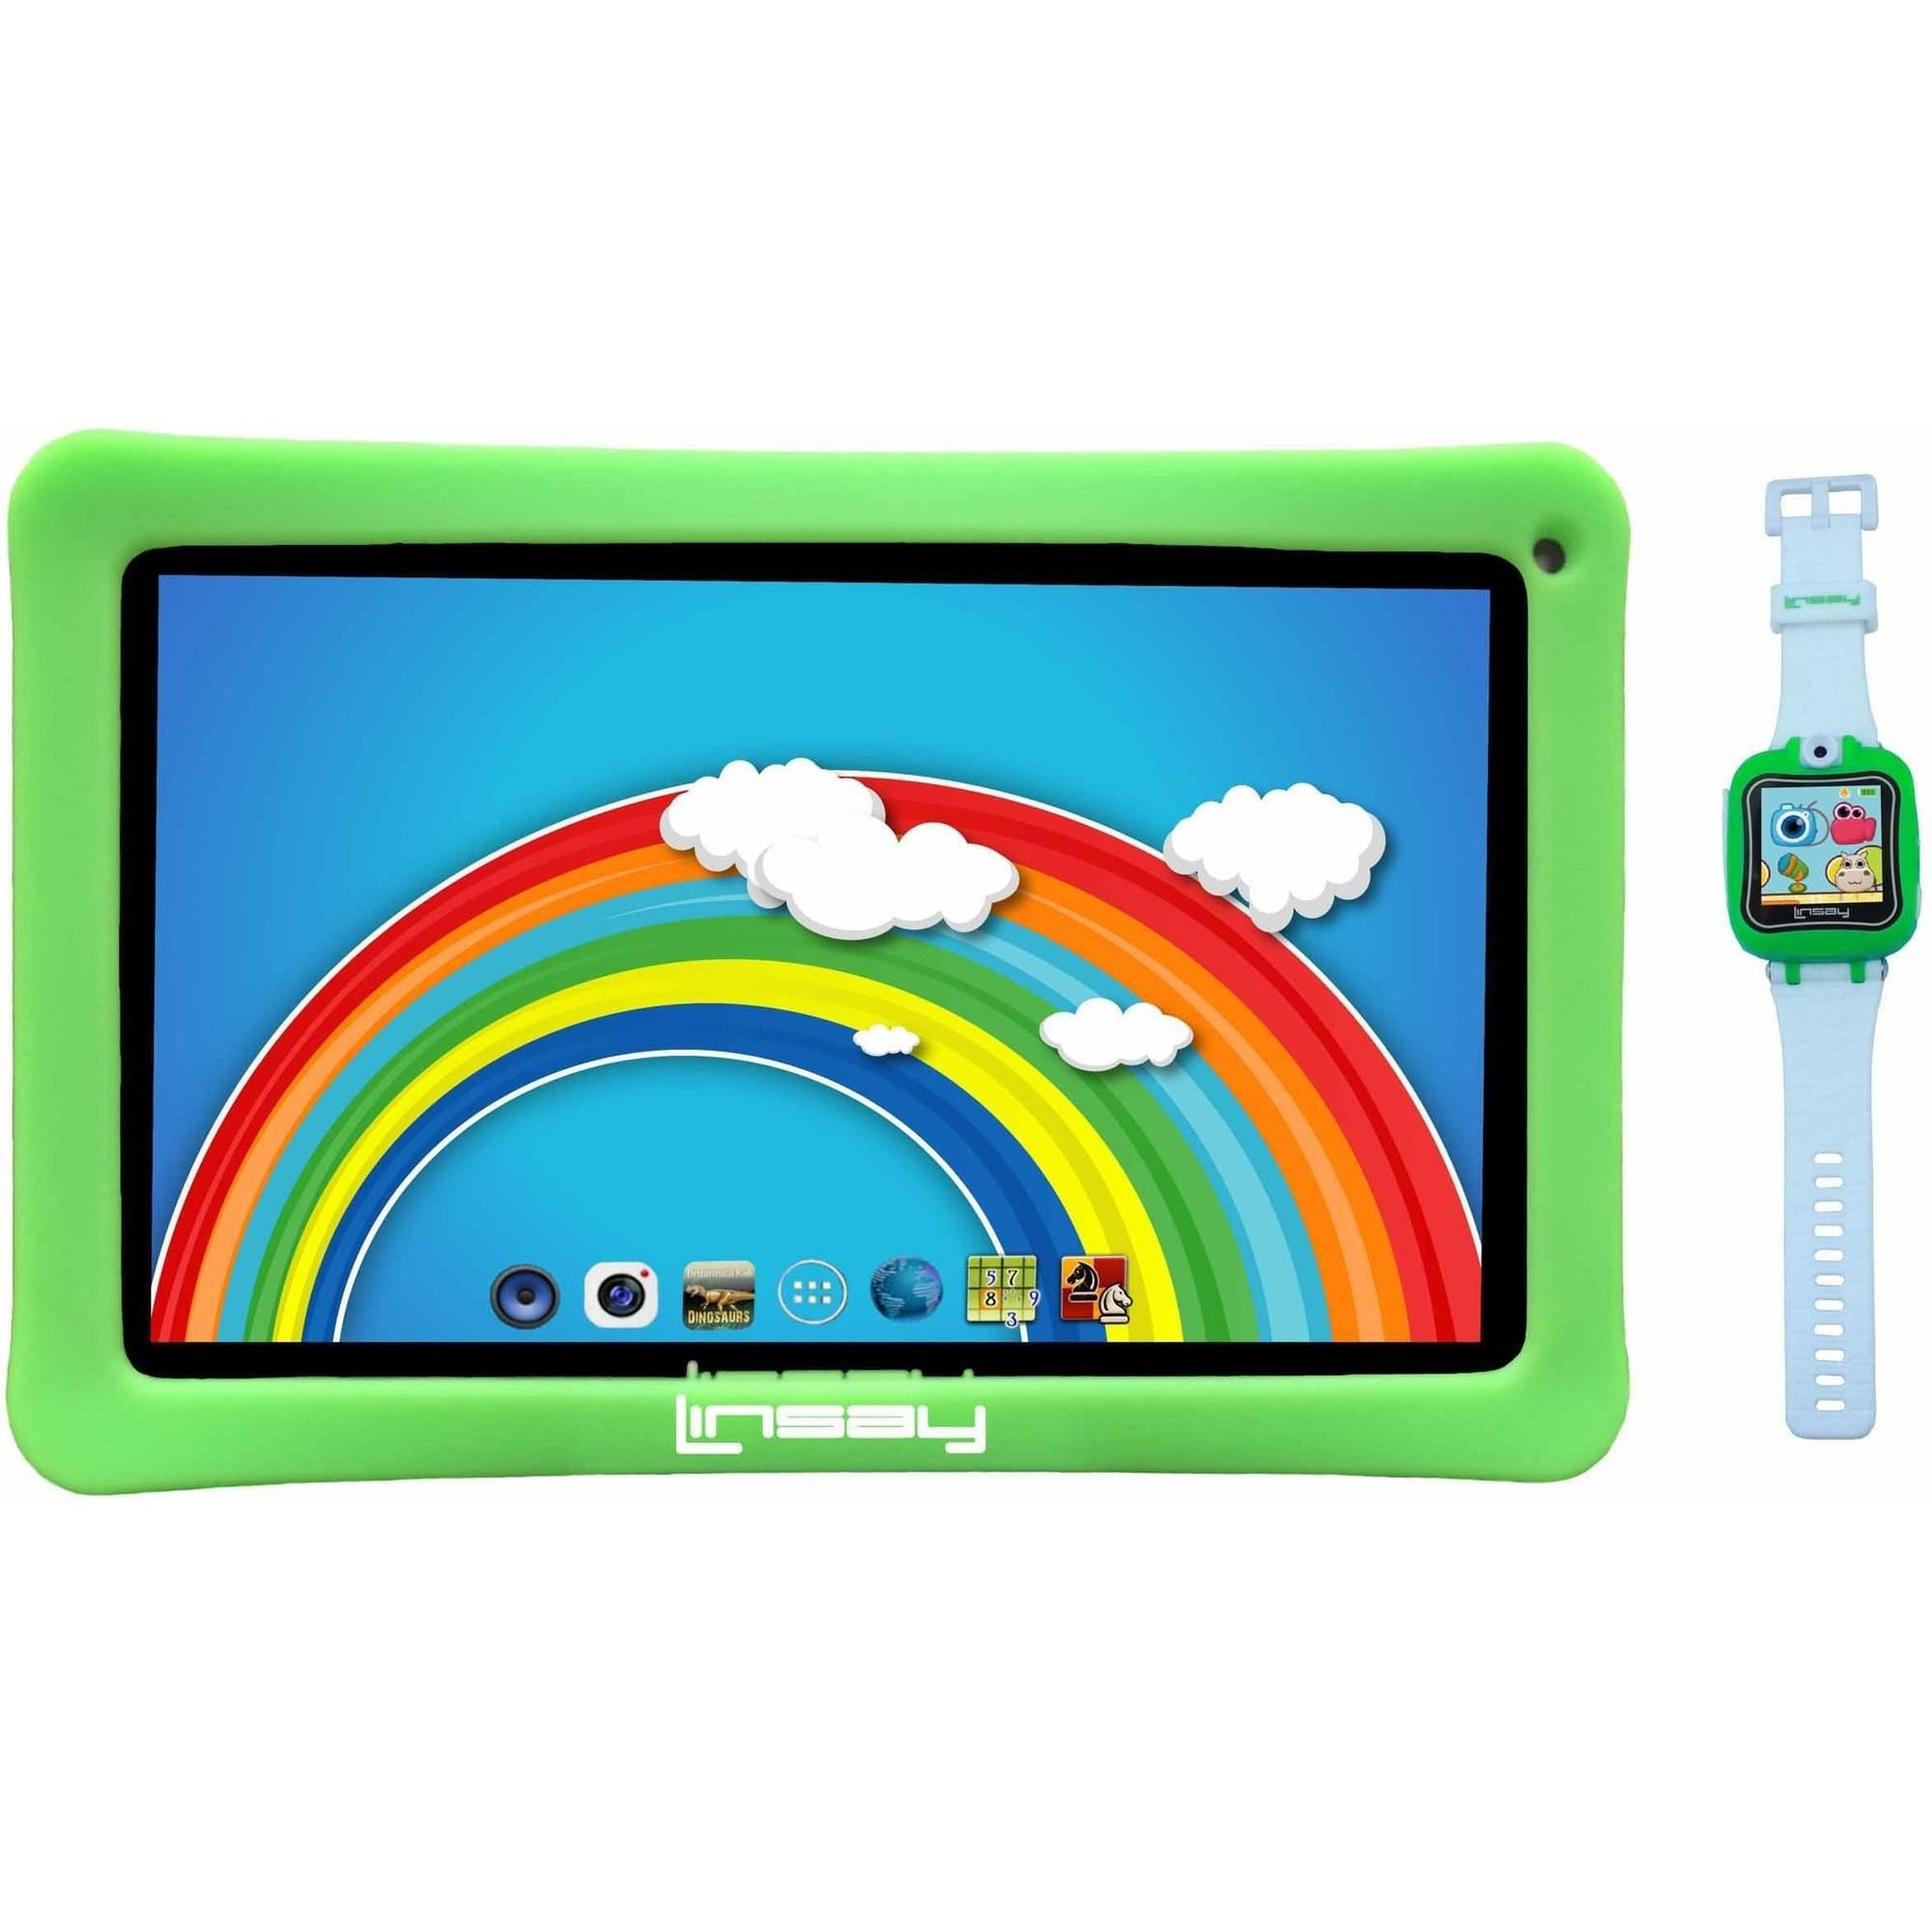 "LINSAY Kids Funny 10.1"" Touchscreen Quad Core Tablet PC Featuring Android 4.4 (KitKat) Operating System Bundle with Green Kids Smart Watch"